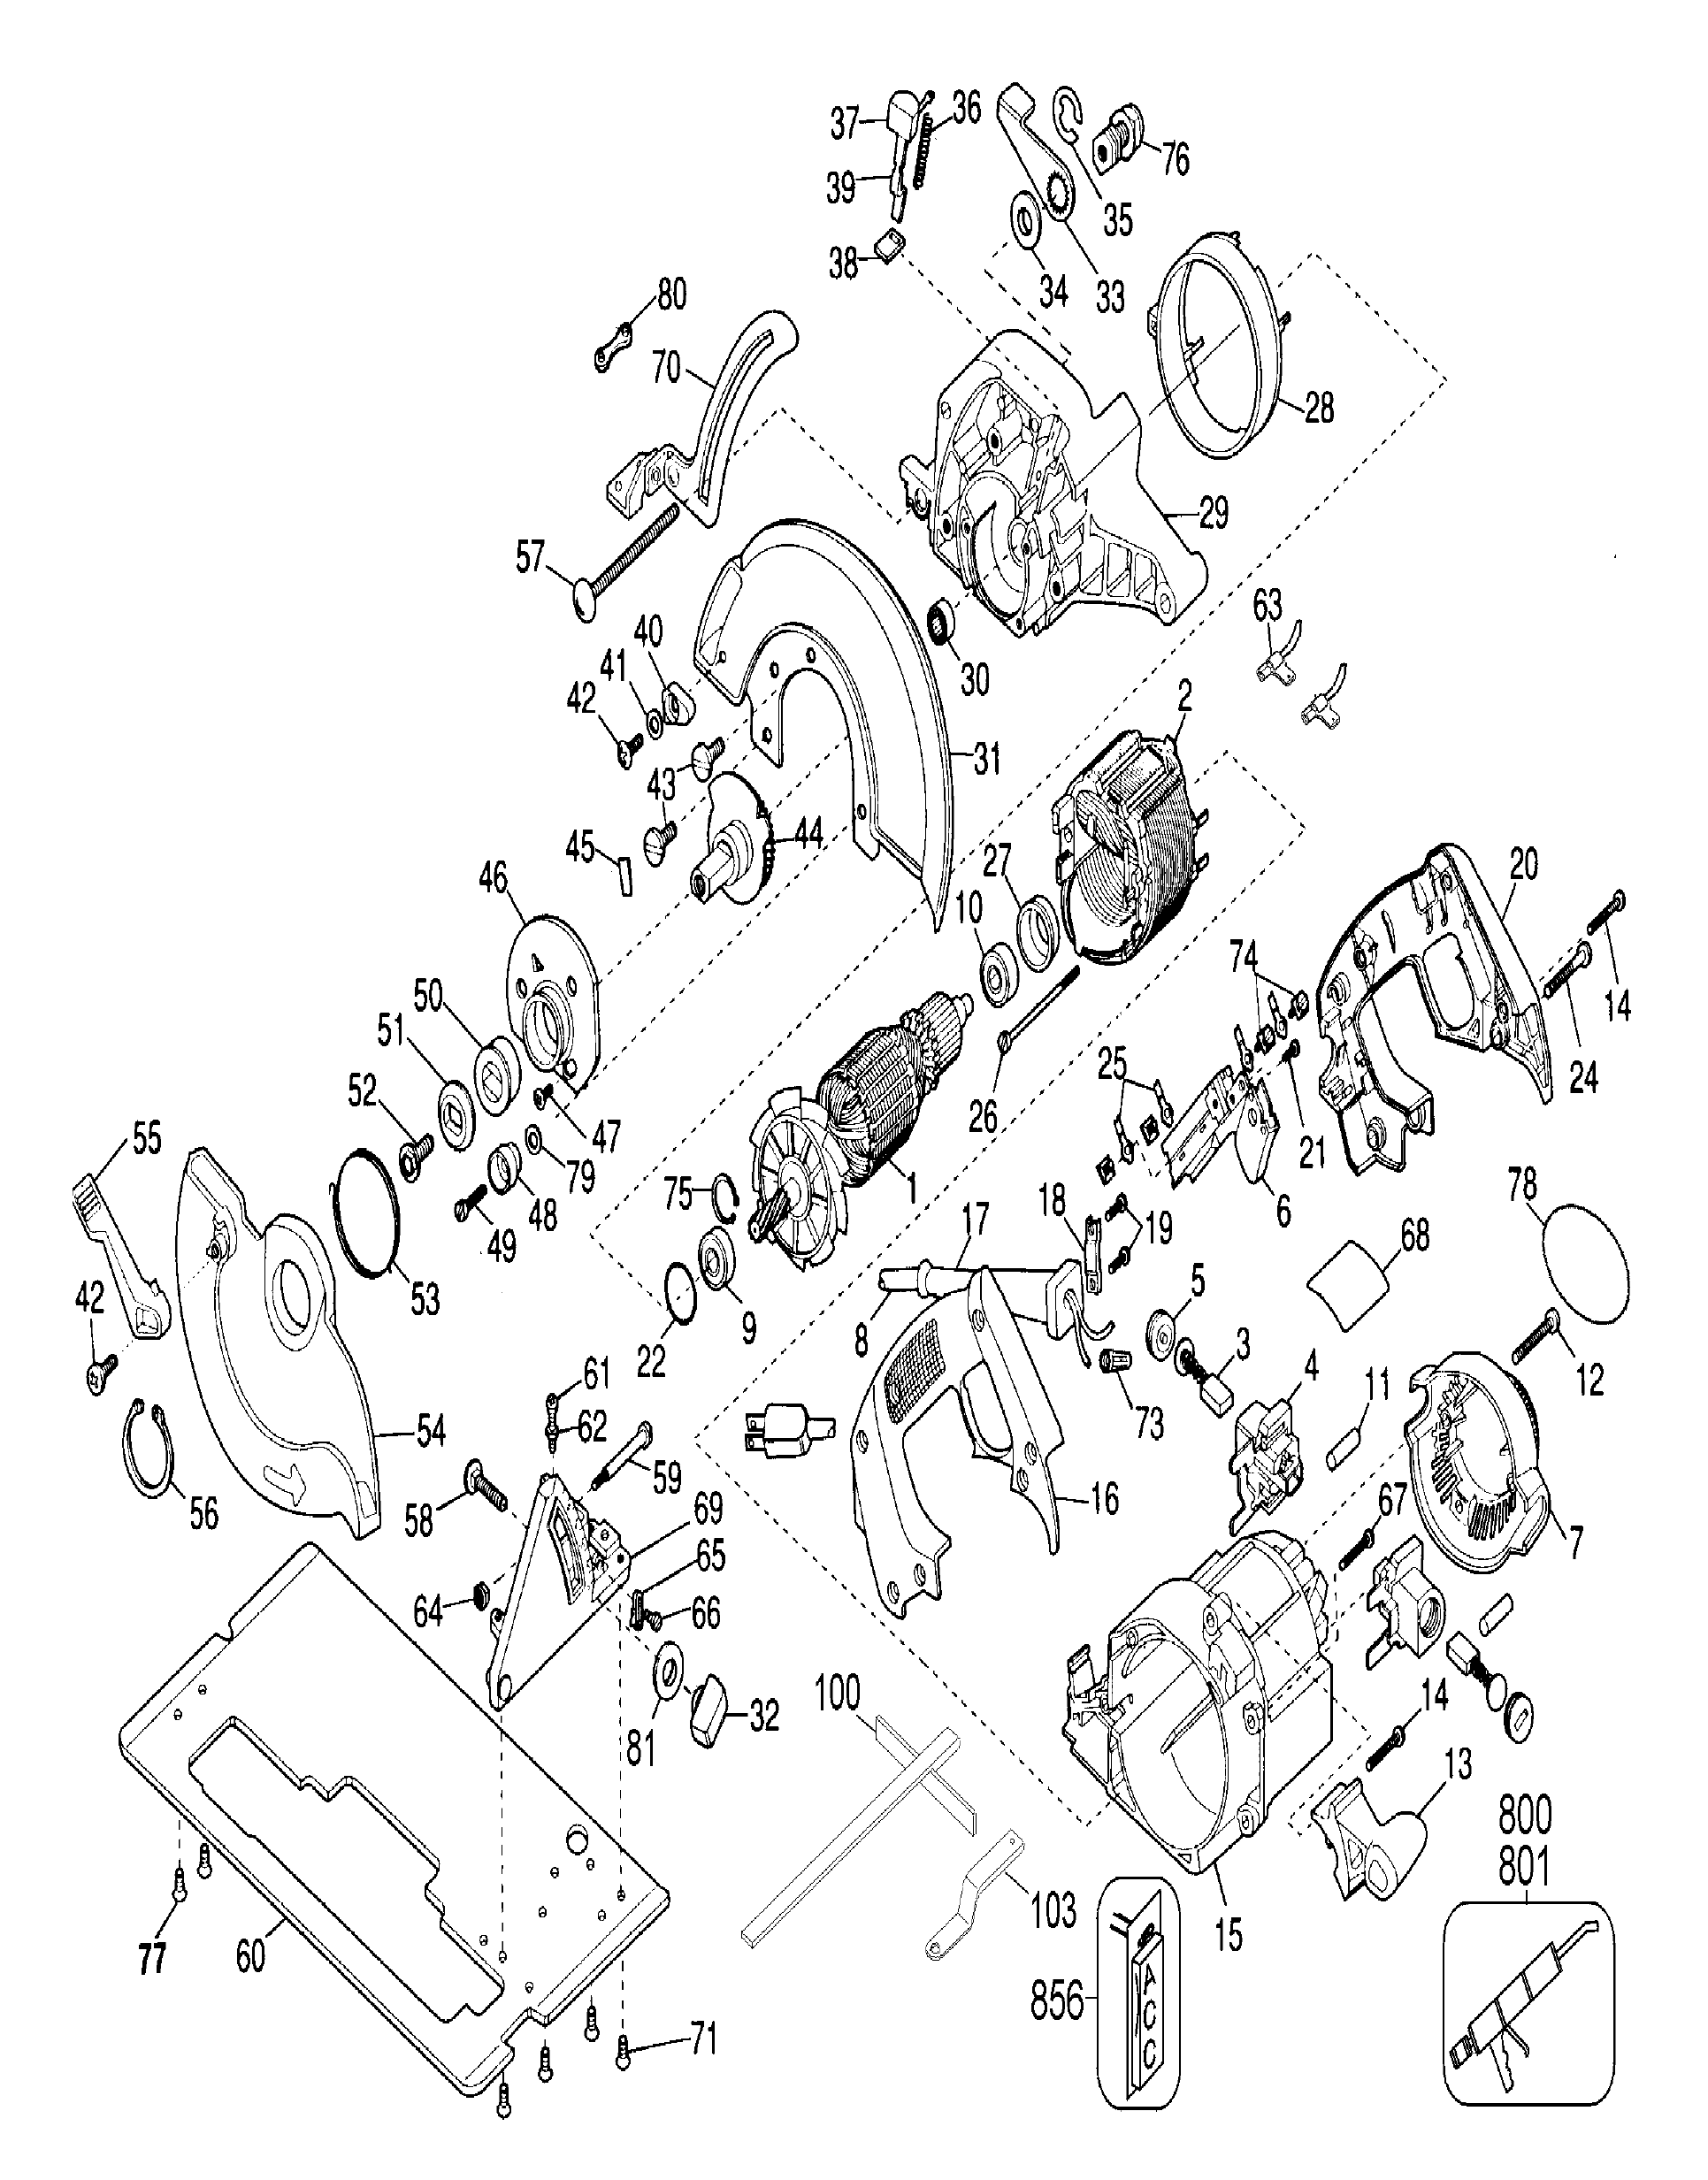 husqvarna 359 parts diagram  husqvarna  free engine image